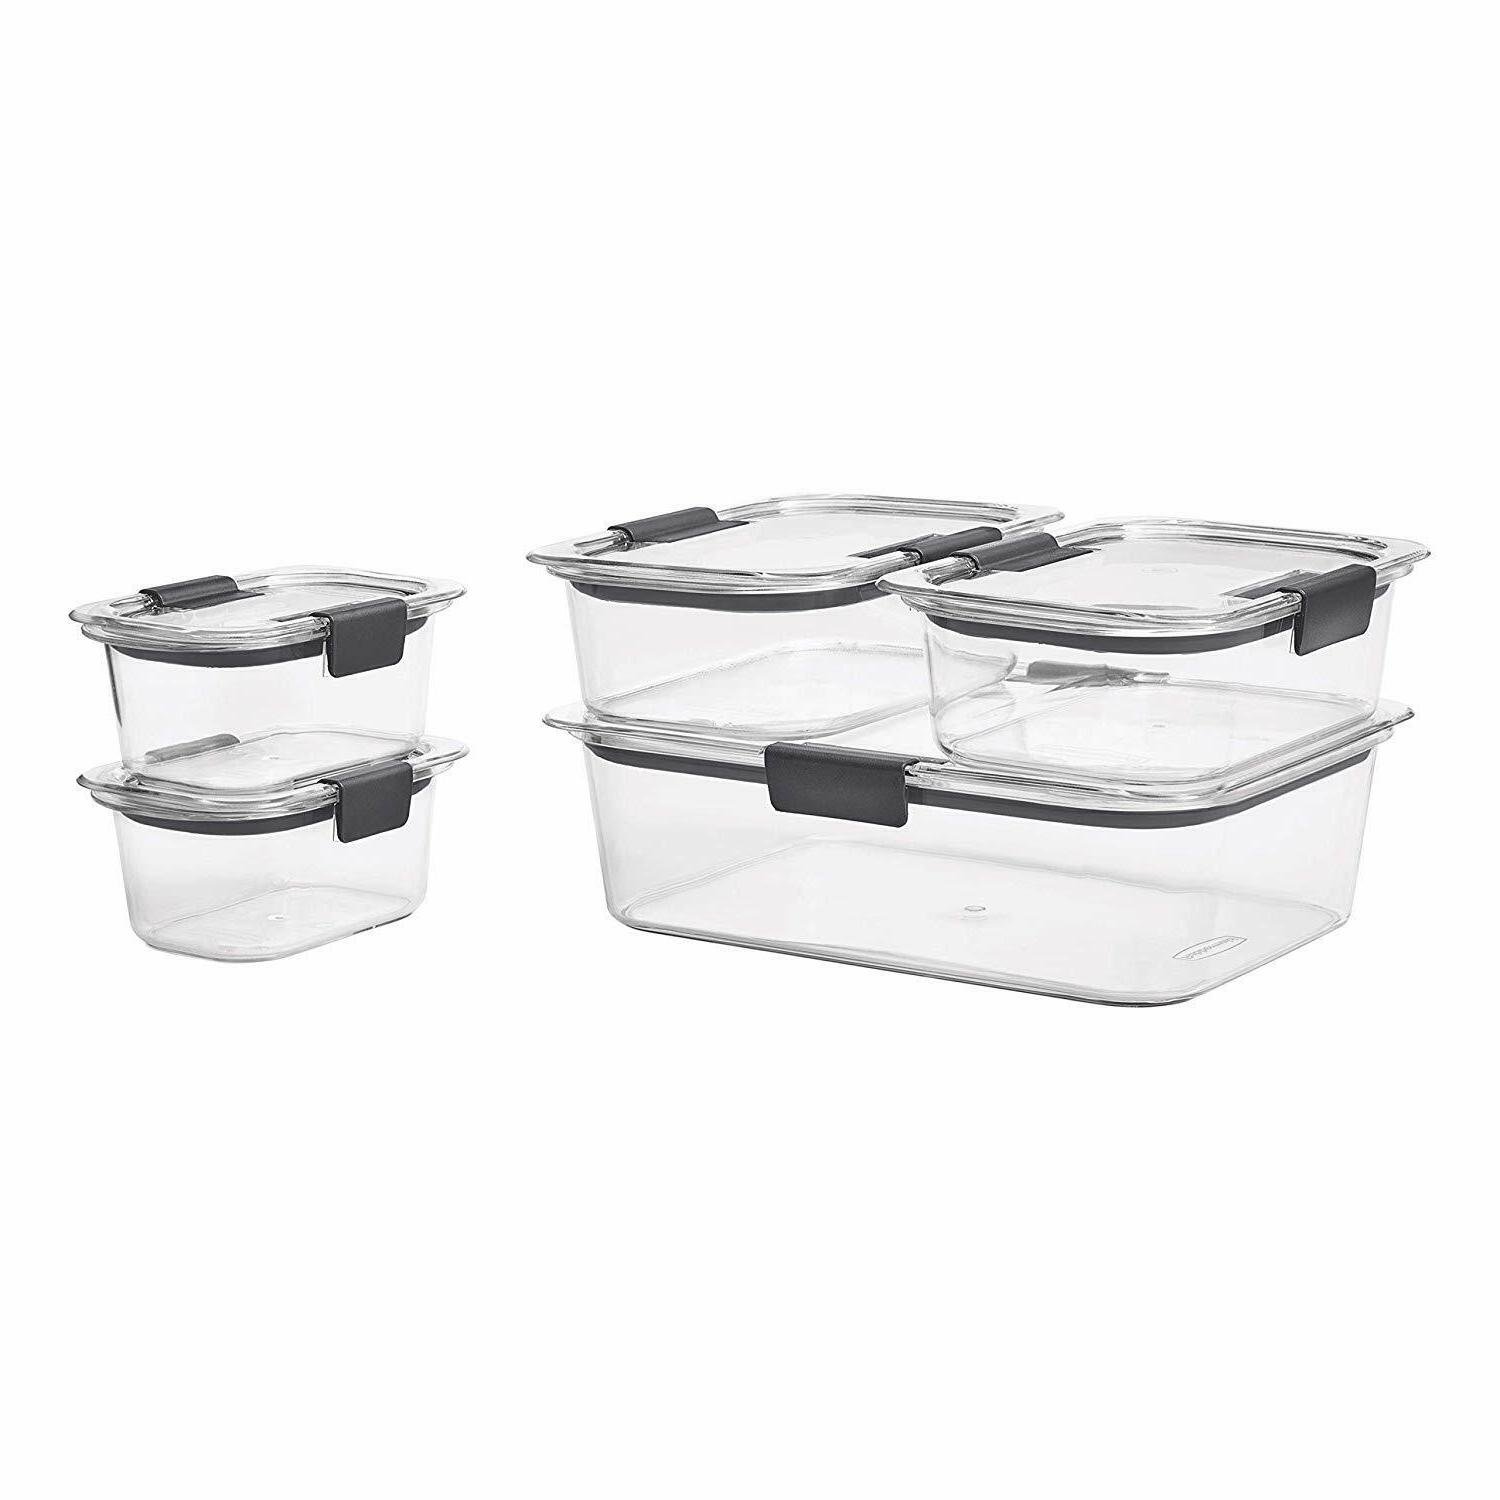 Rubbermaid Containers Airtight Lids Free Set Of